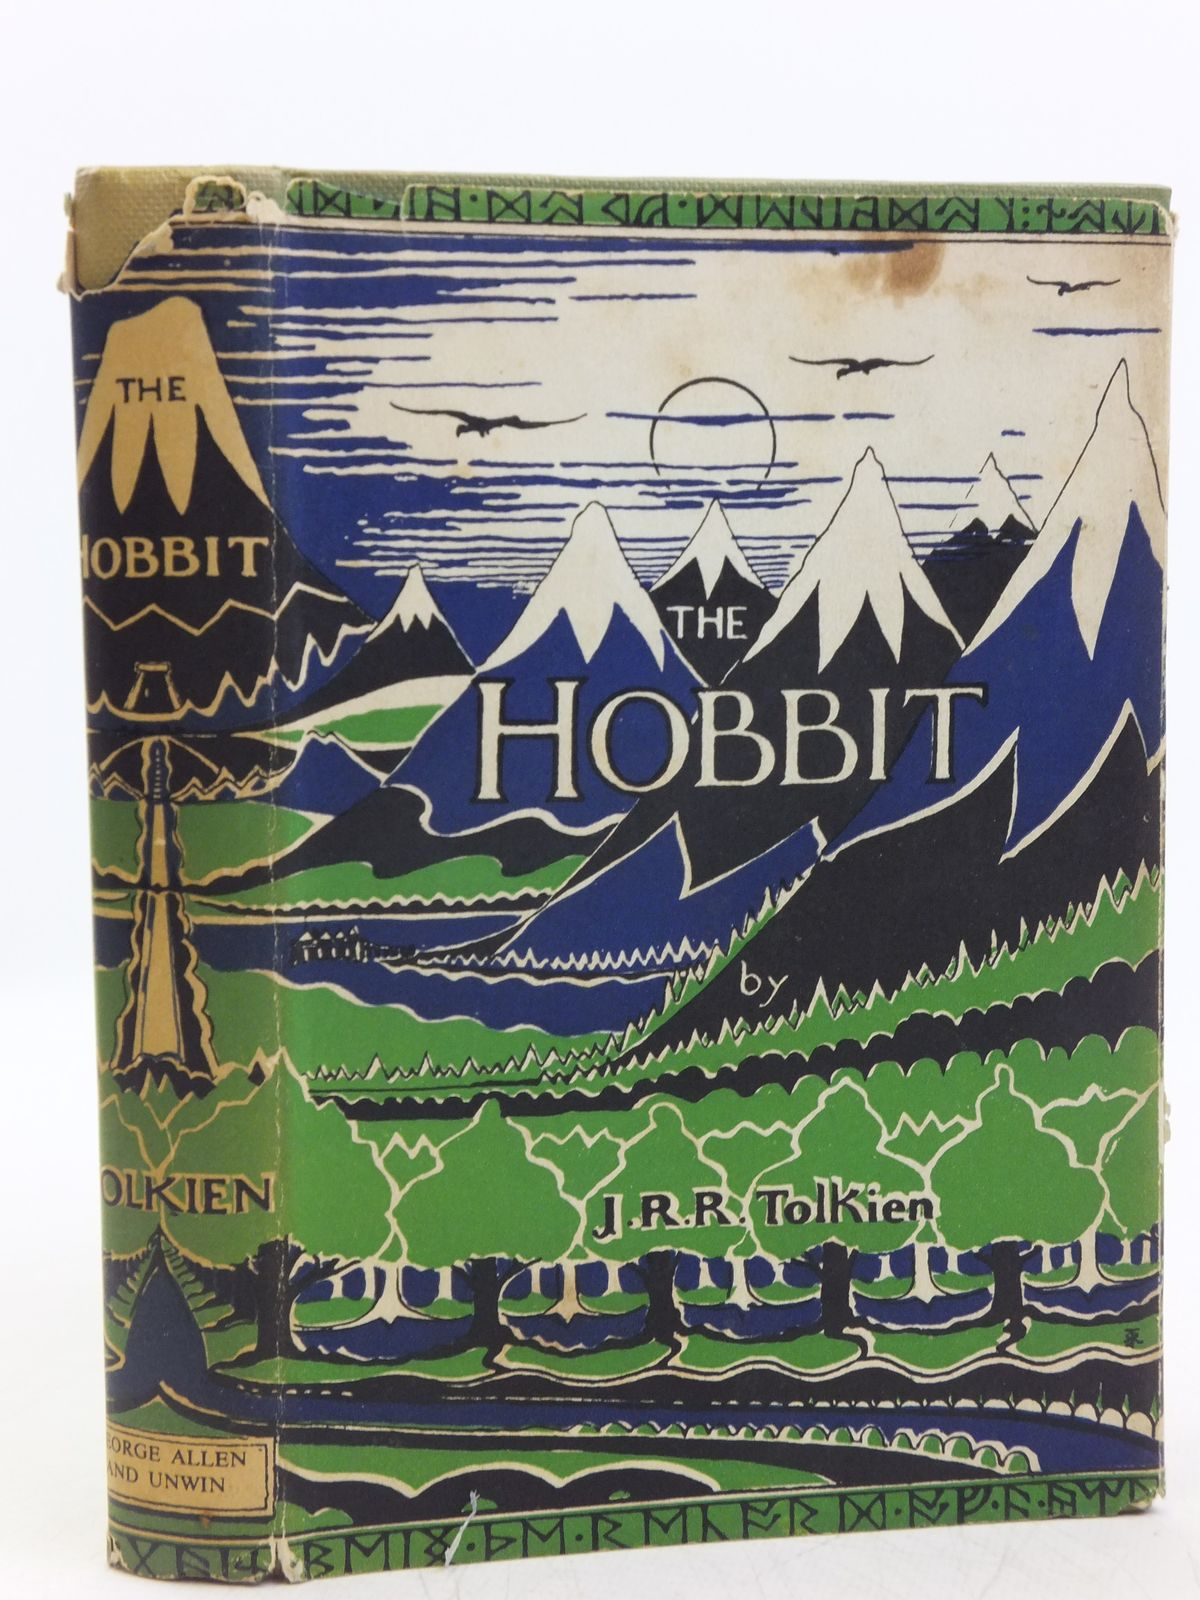 a book report on the hobbit by j r r tolkien The hobbit [jrr tolkien, christopher tolkien] on amazoncom free shipping on qualifying offers this deluxe hardcover edition of jrr tolkien's classic prelude to his lord of the rings trilogy contains a short introduction by christopher tolkien.